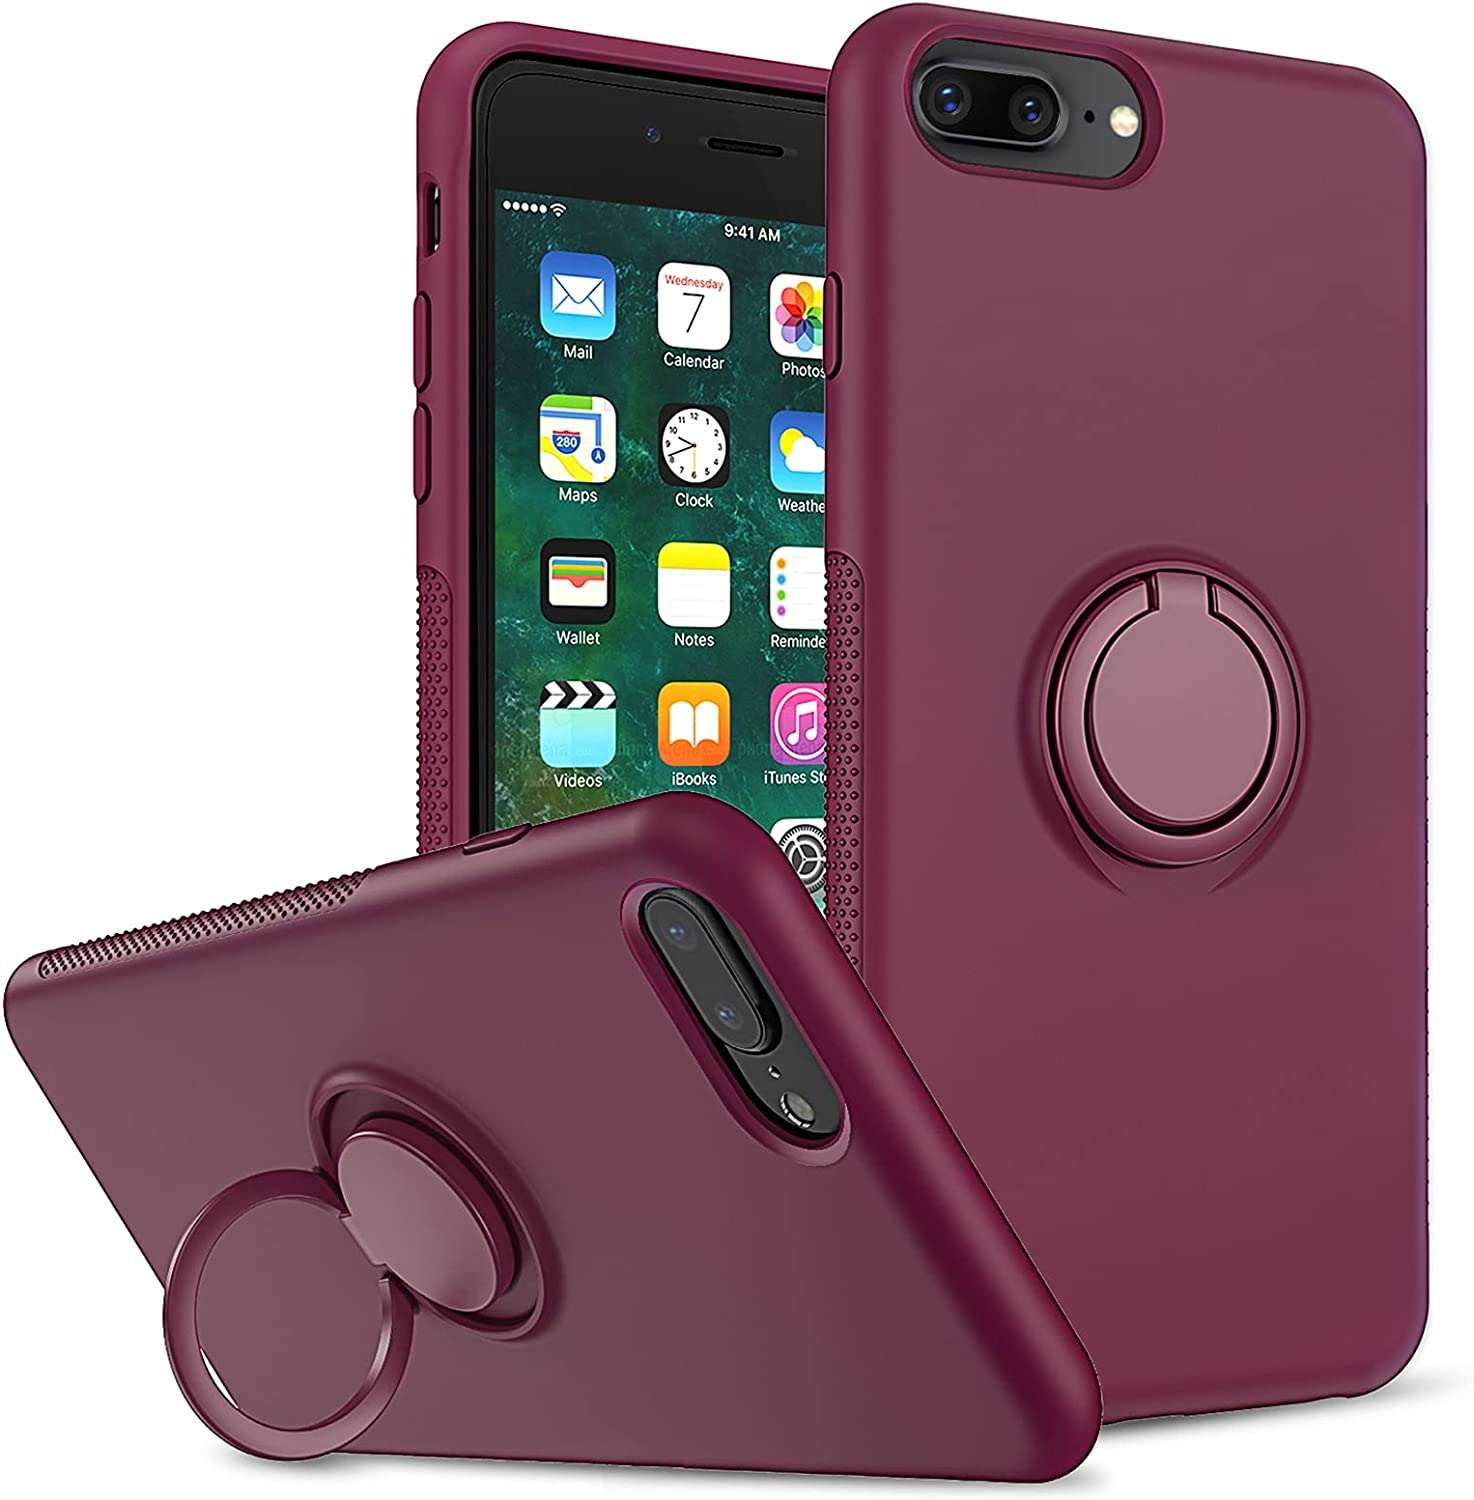 LeYi Compatible with iPhone 8 Plus Case, iPhone 7 Plus Case, iPhone 6s Plus Liquid Silicone Gel Rubber Case, Soft Microfiber Liner Shockproof Phone Cover for iPhone 6 Plus, Wine Red